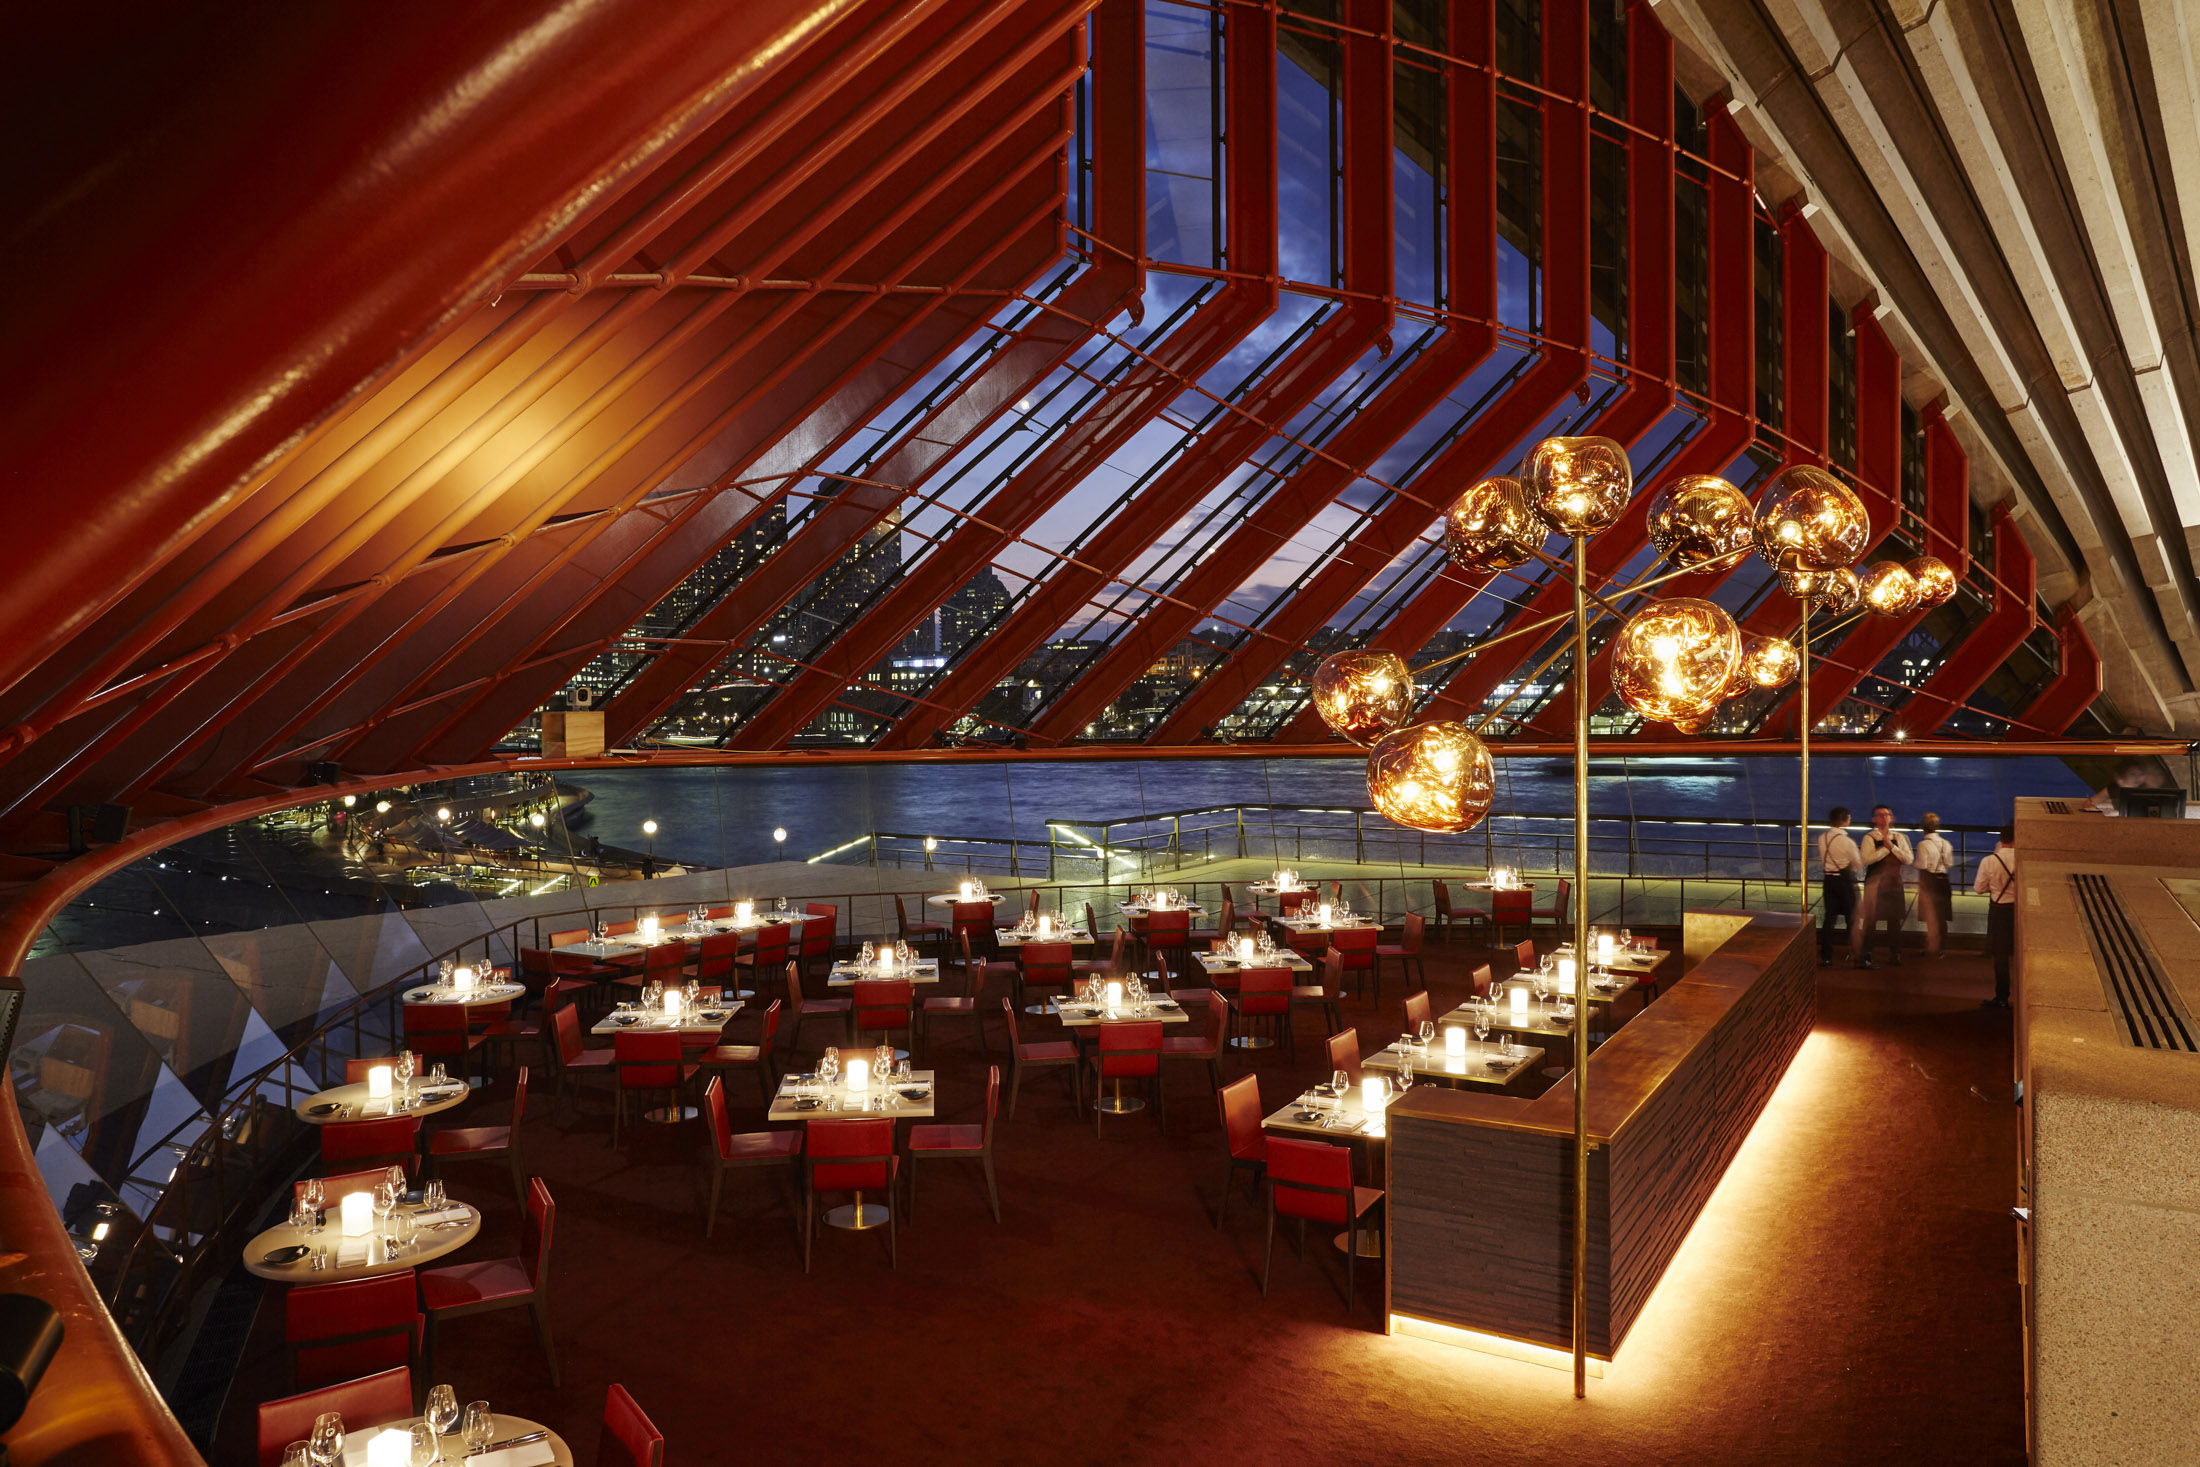 Bennelong Sydney Review A Beautiful Restaurant at the  :  1x 1 from www.bloomberg.com size 2200 x 1467 jpeg 885kB